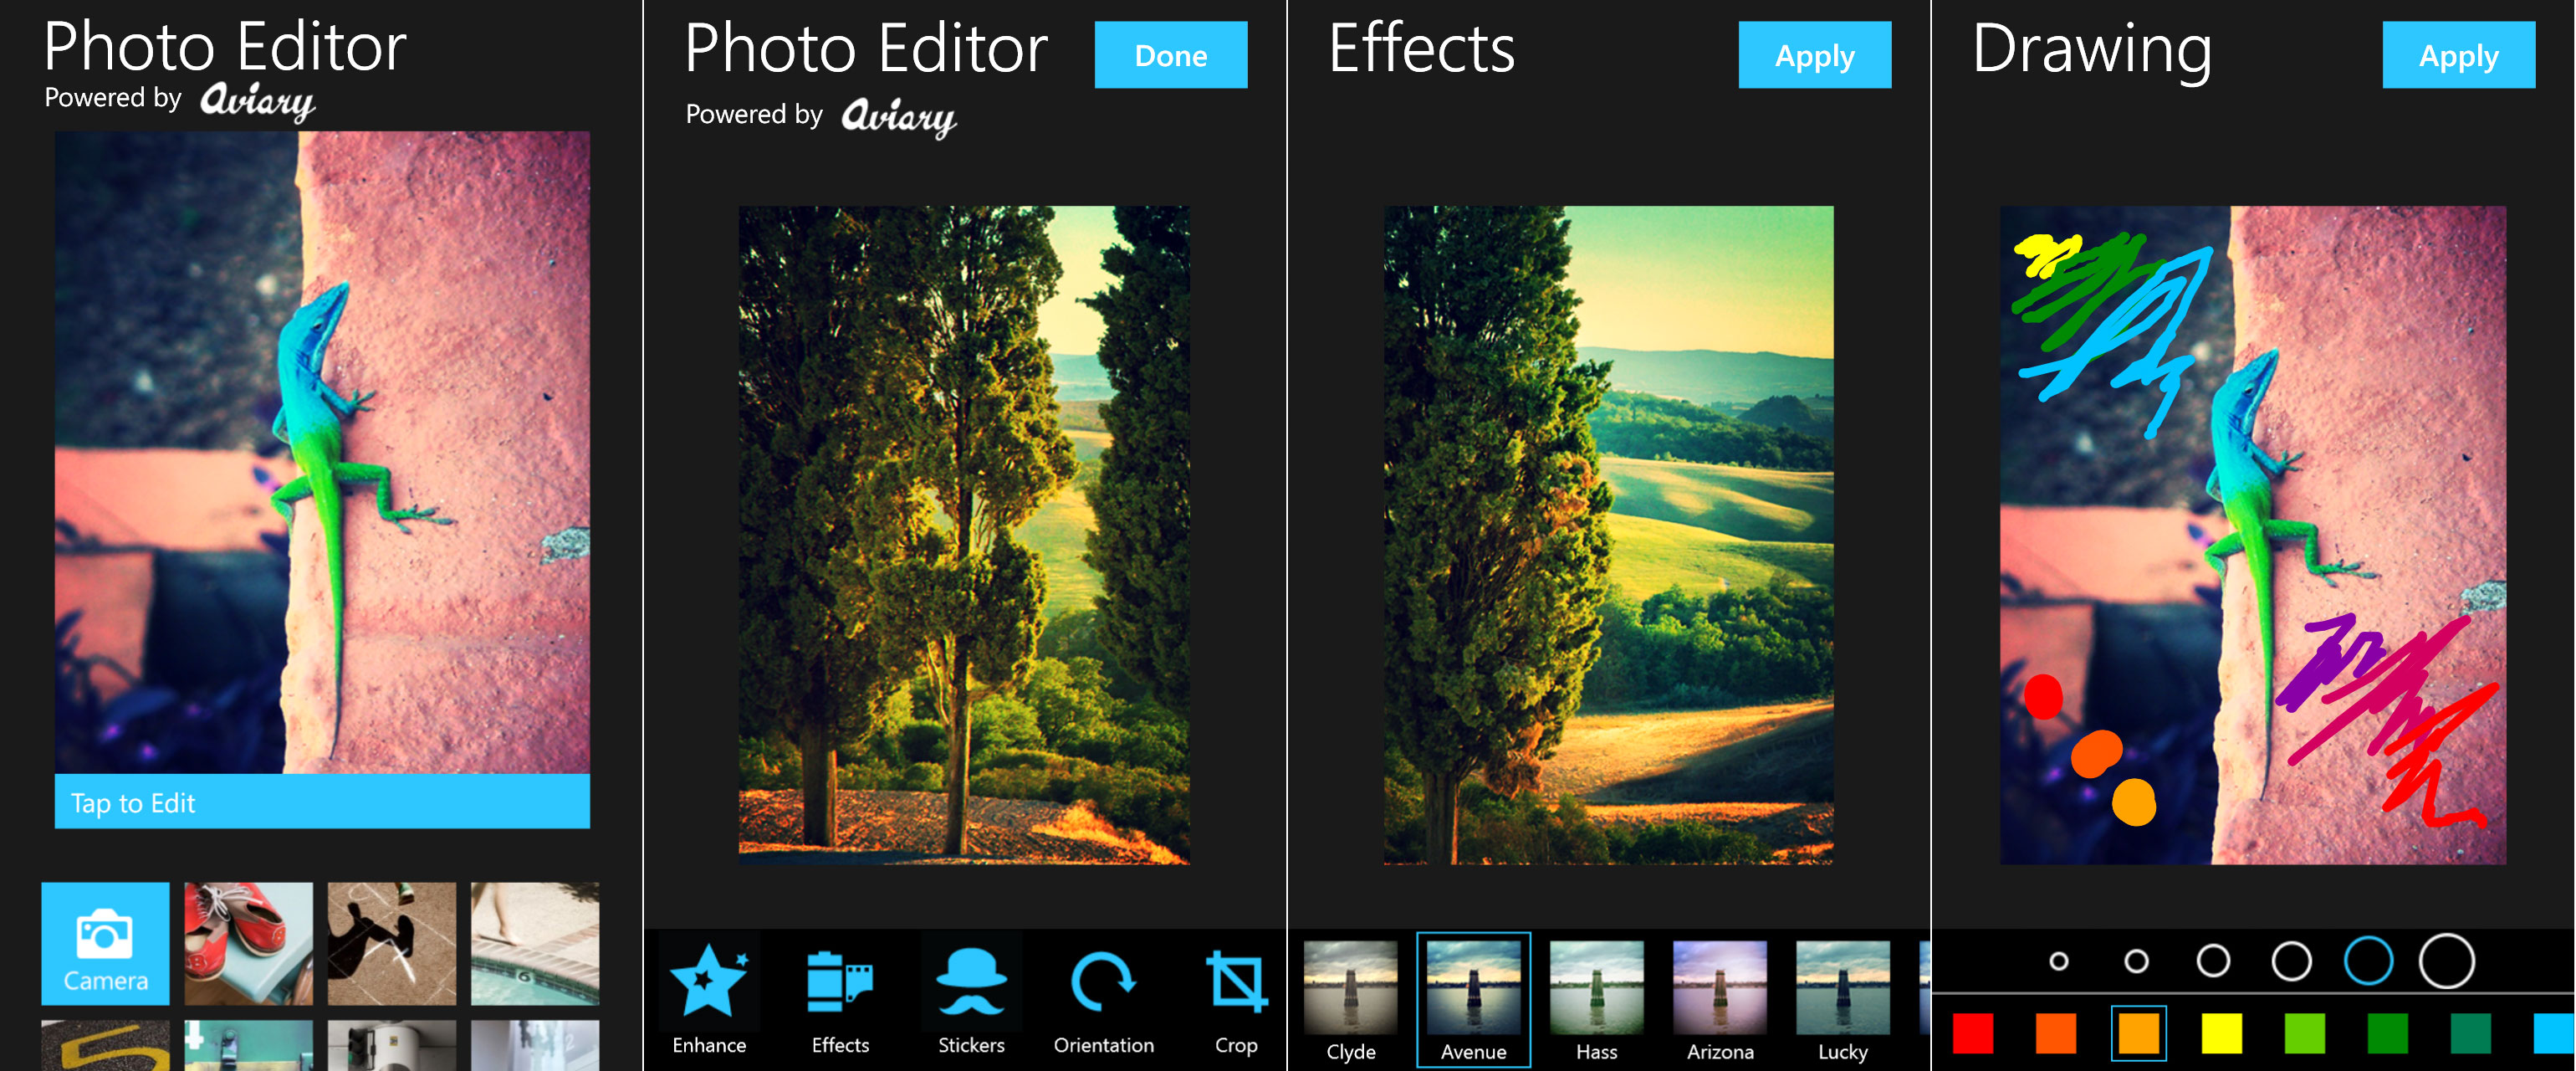 4 Best Image Editing Apps to Make Photos Strikingly Good